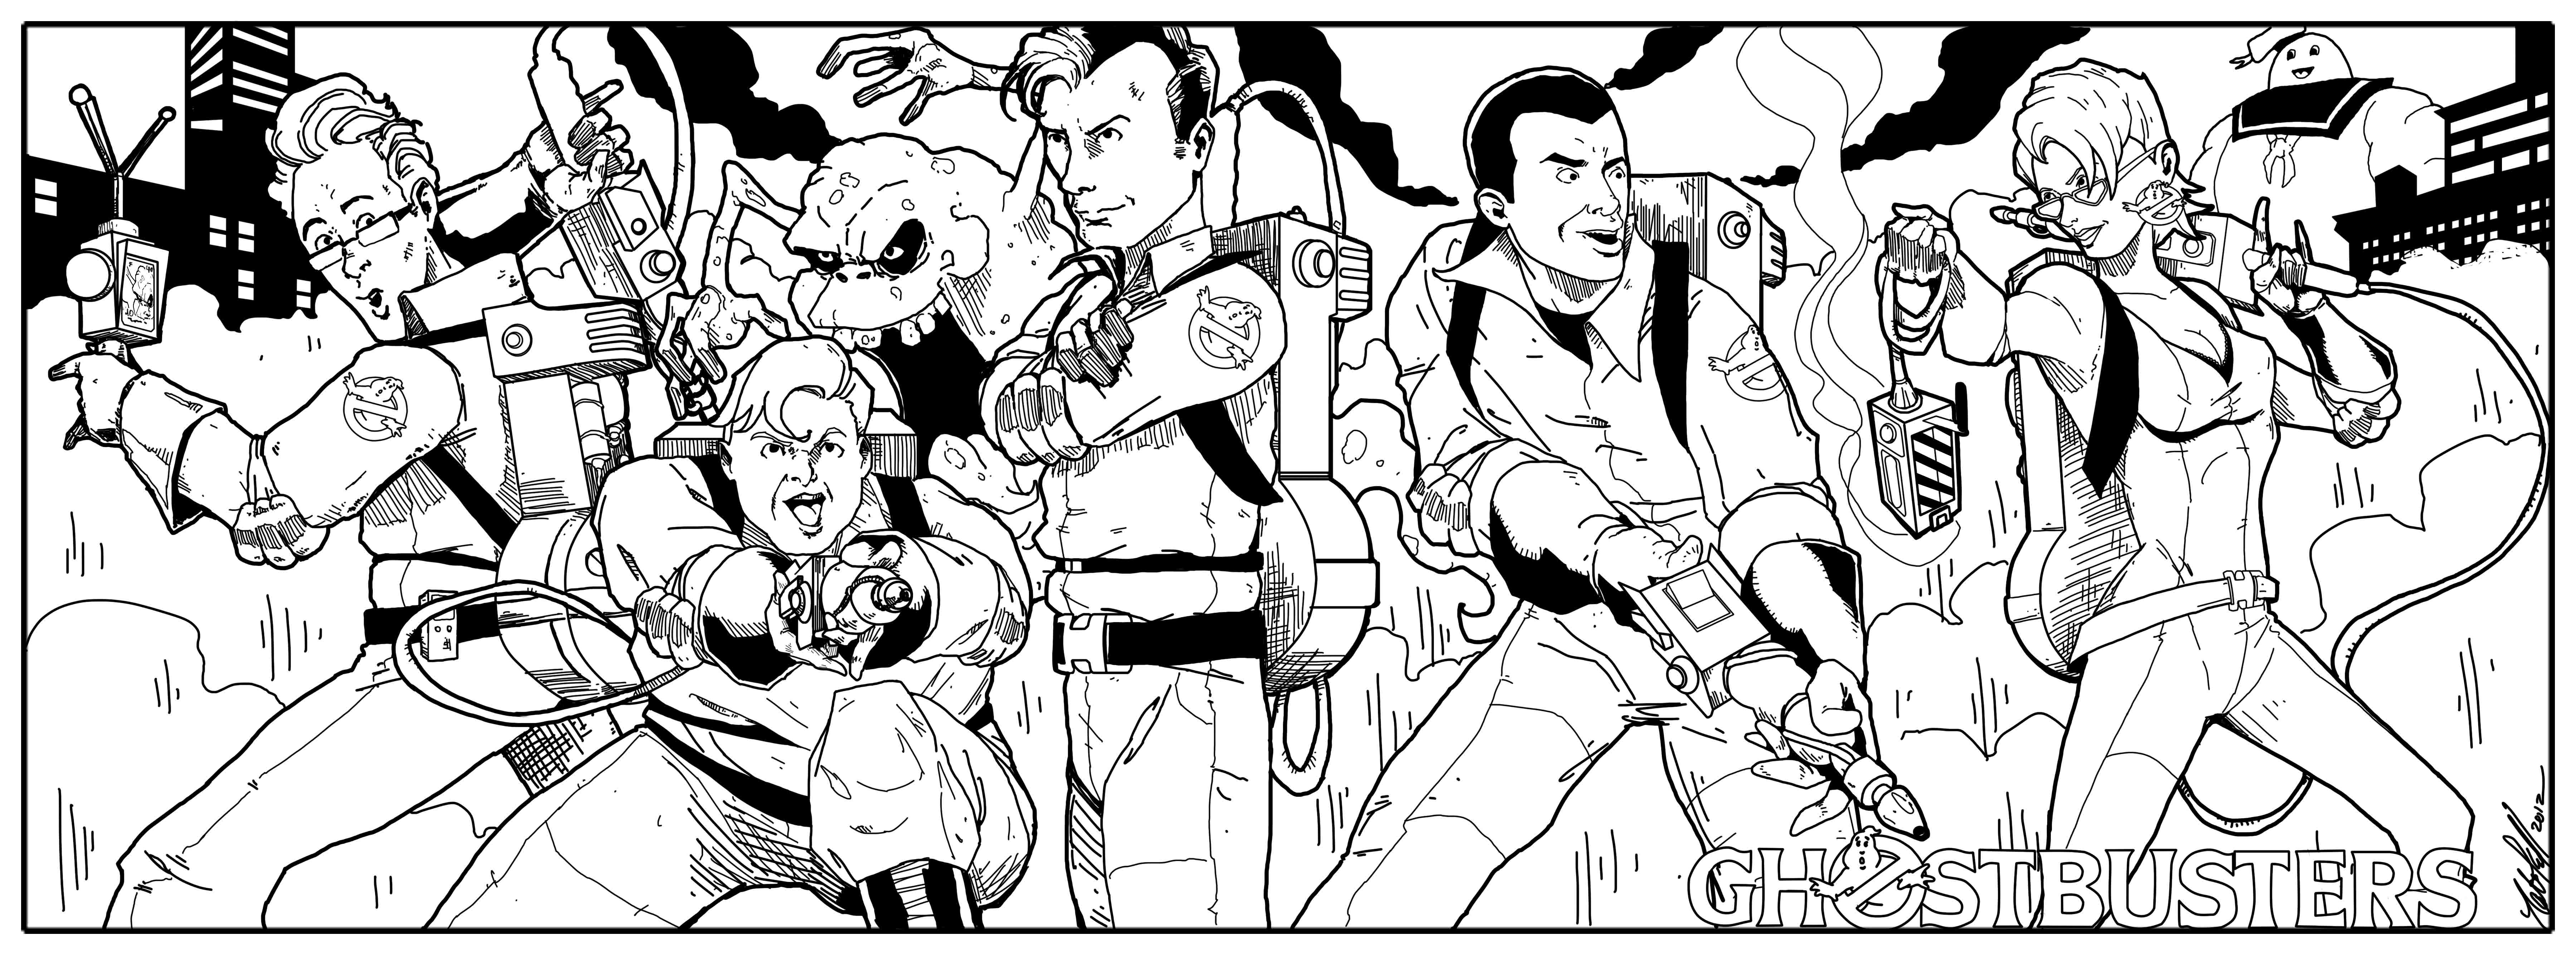 Ghostbusters 134017 Movies Printable Coloring Pages